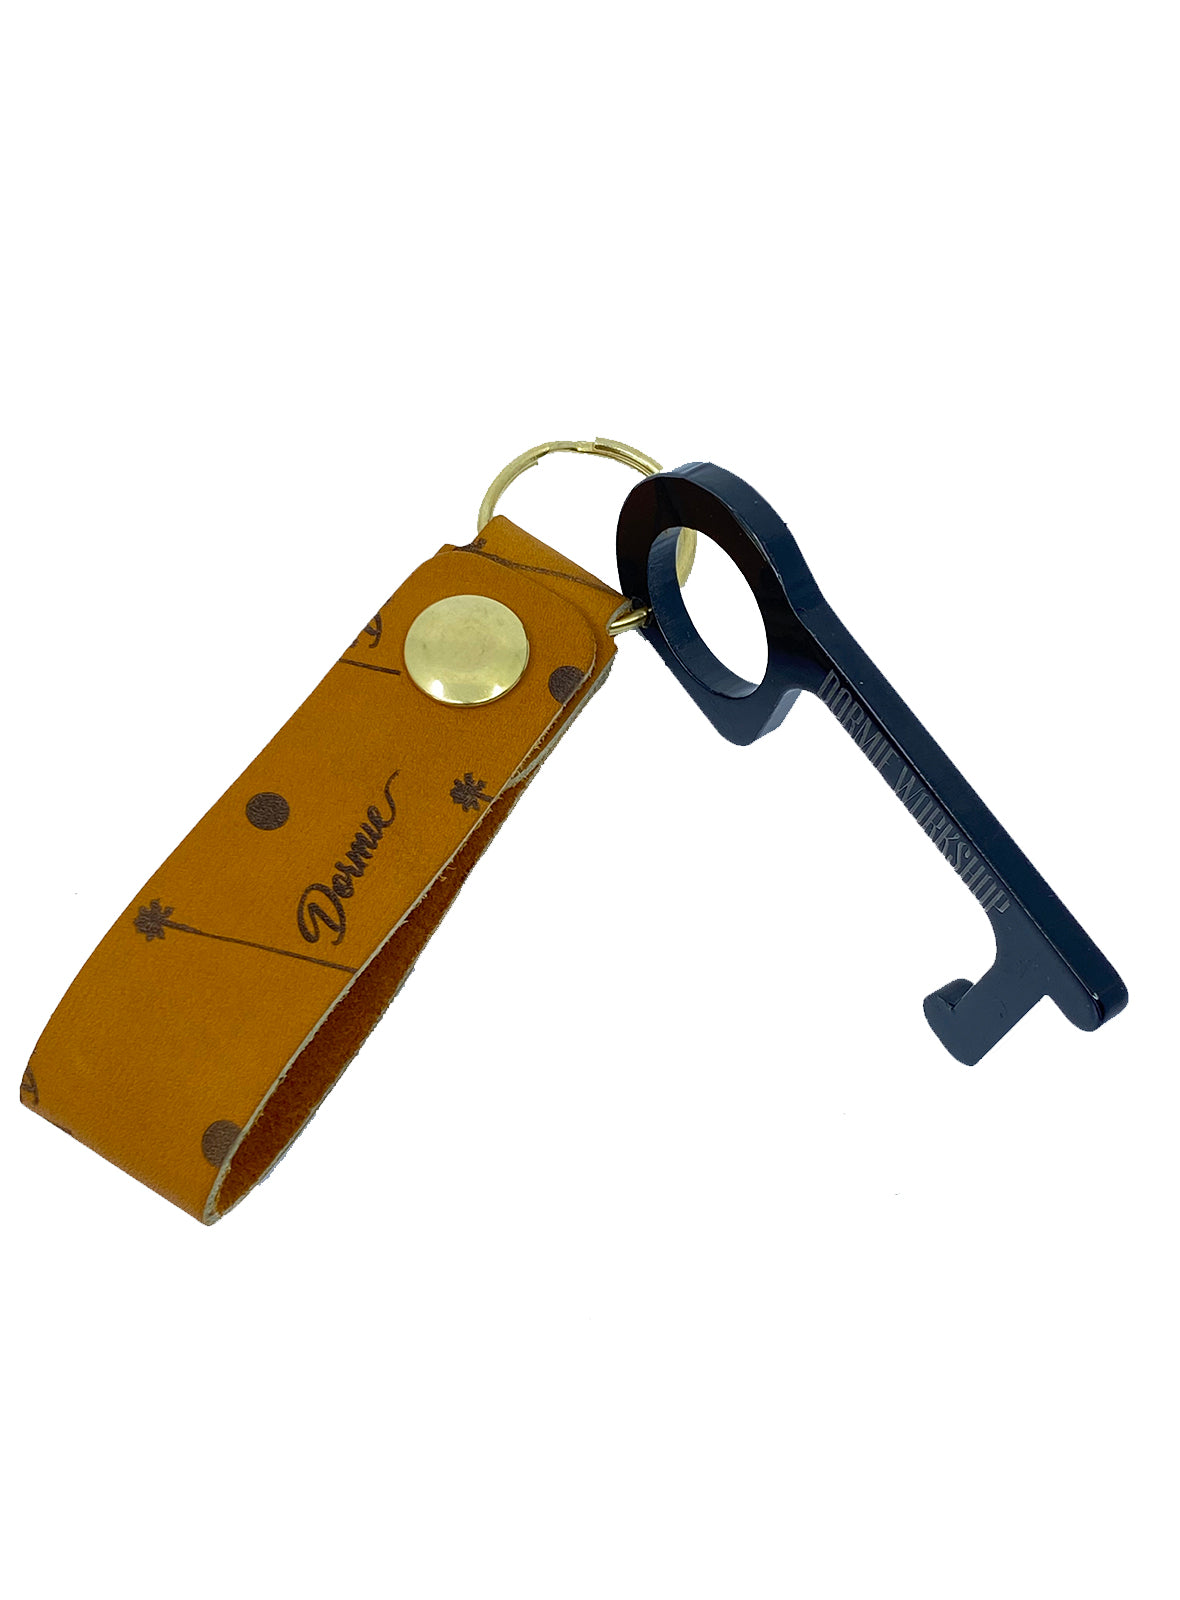 Hygiene Key - Gold Horween leather lanyard with power key